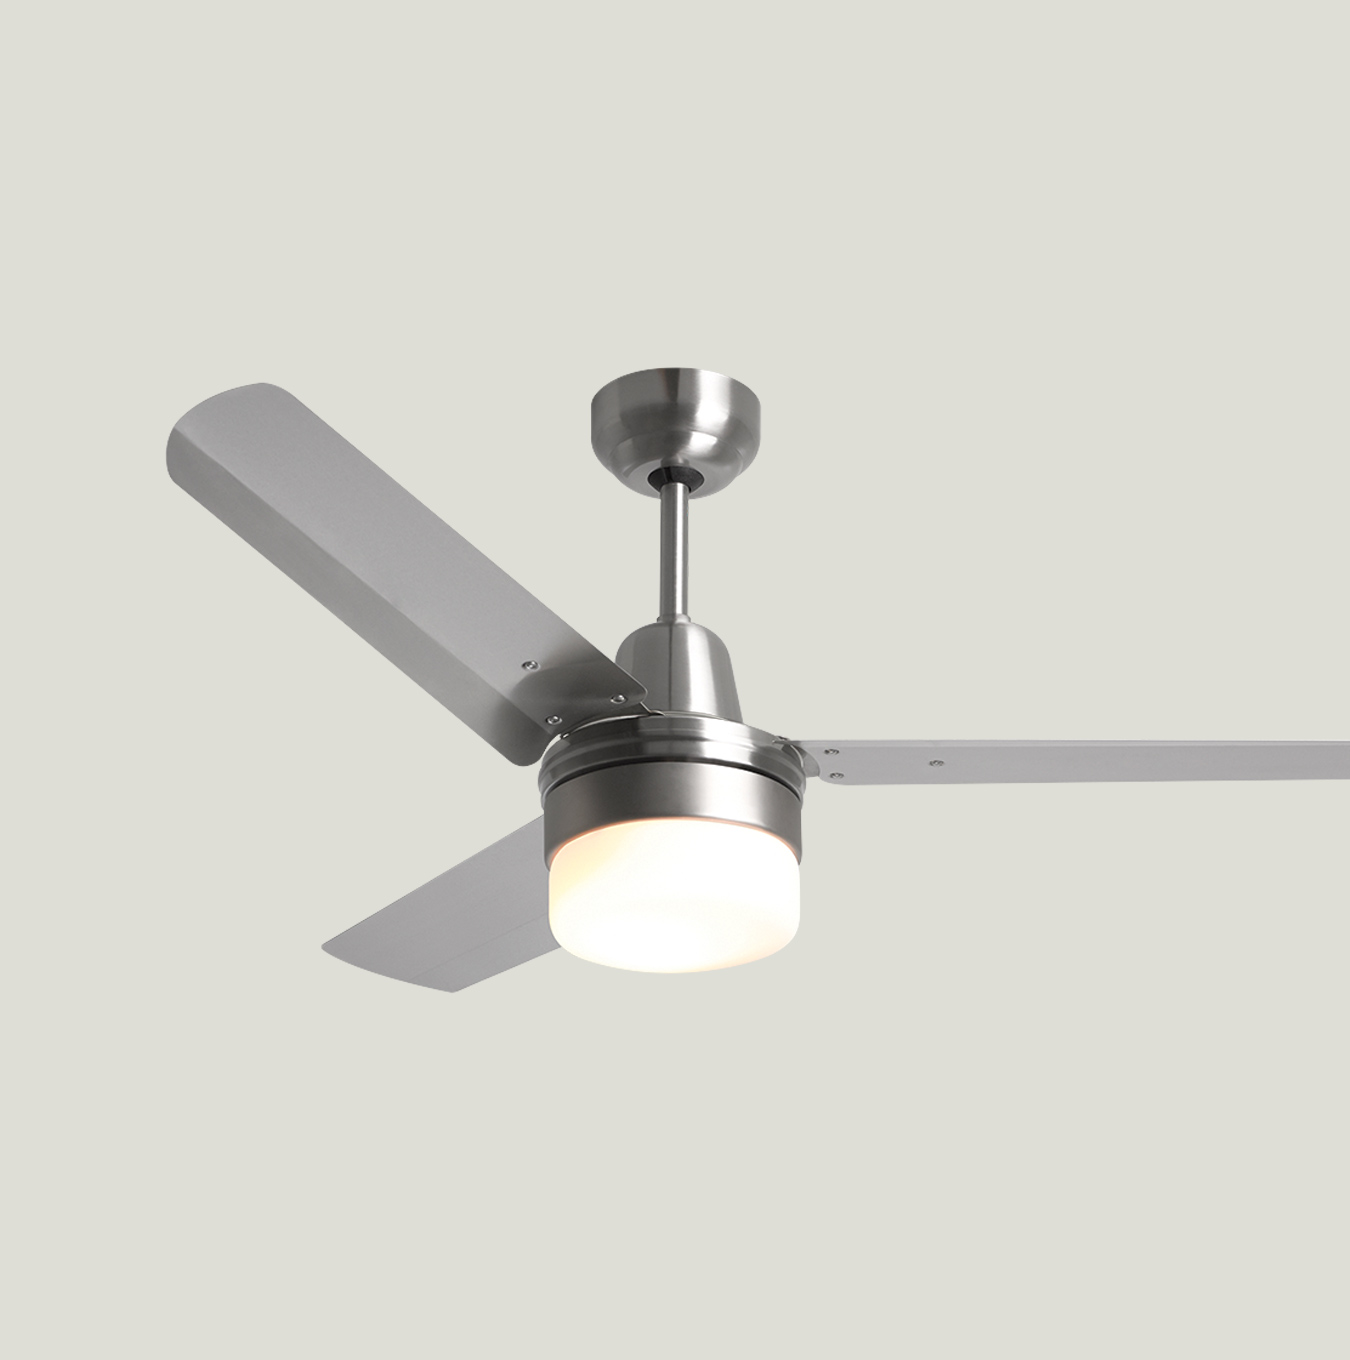 Stainless Ceiling Fans With Light Clipper Light Kits Au Site